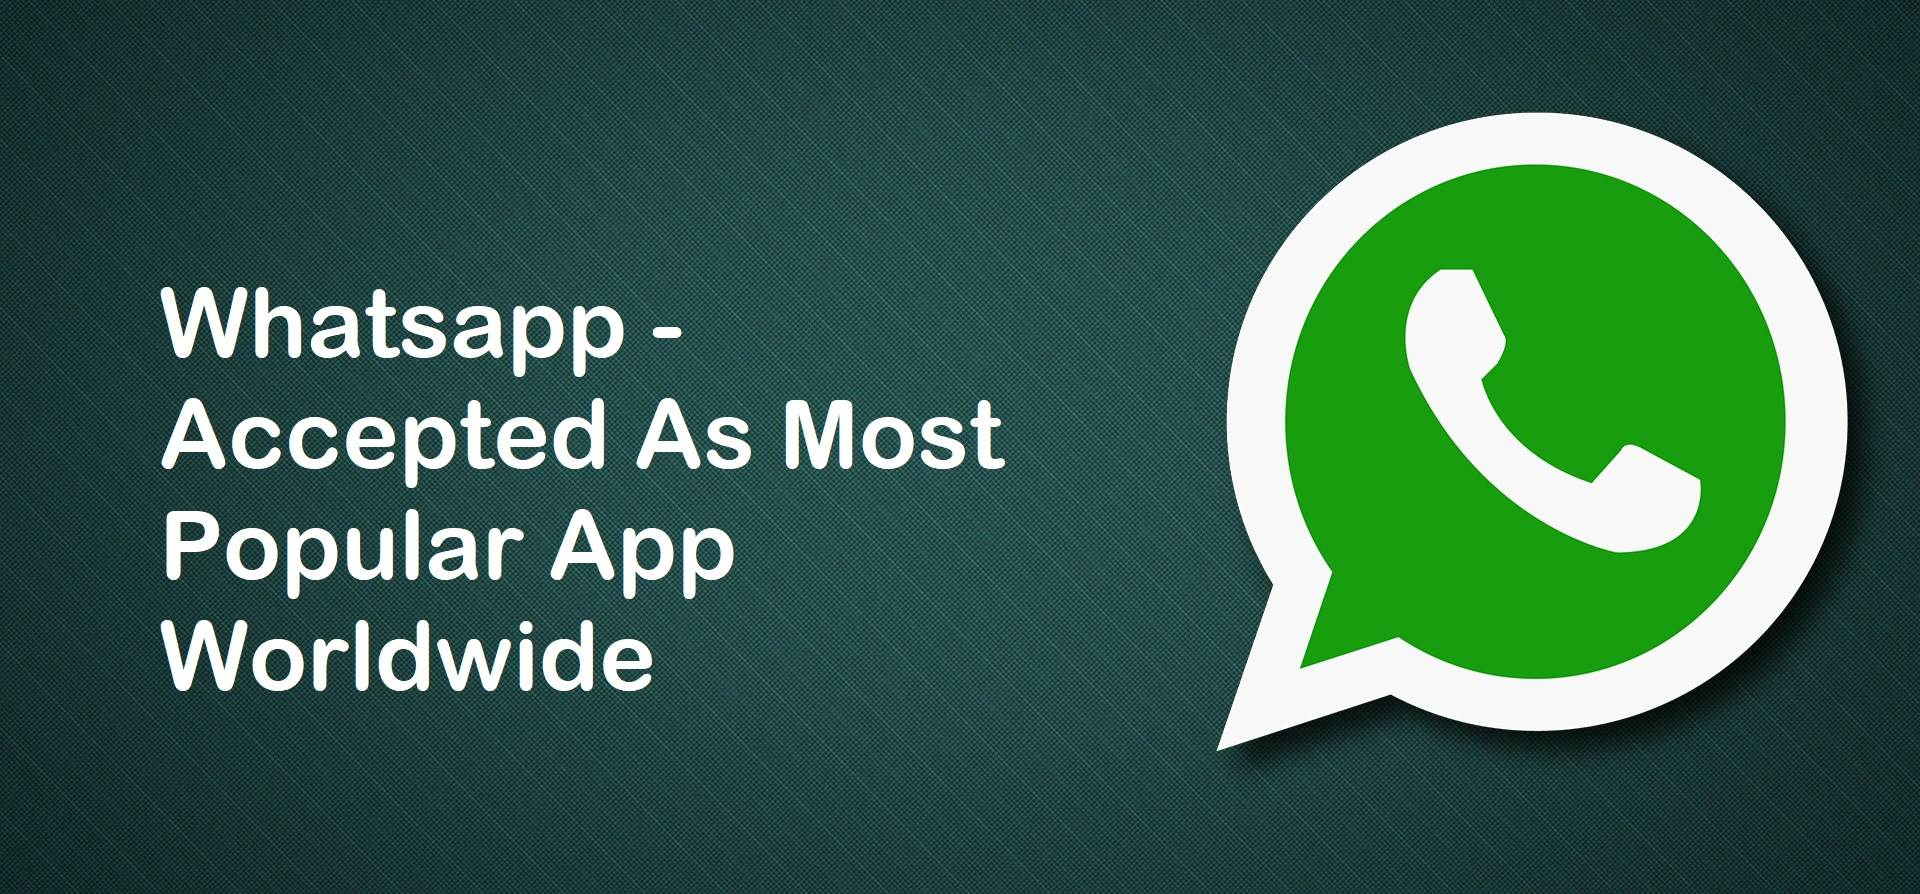 Whatsapp - Accepted As Most Popular App Worldwide